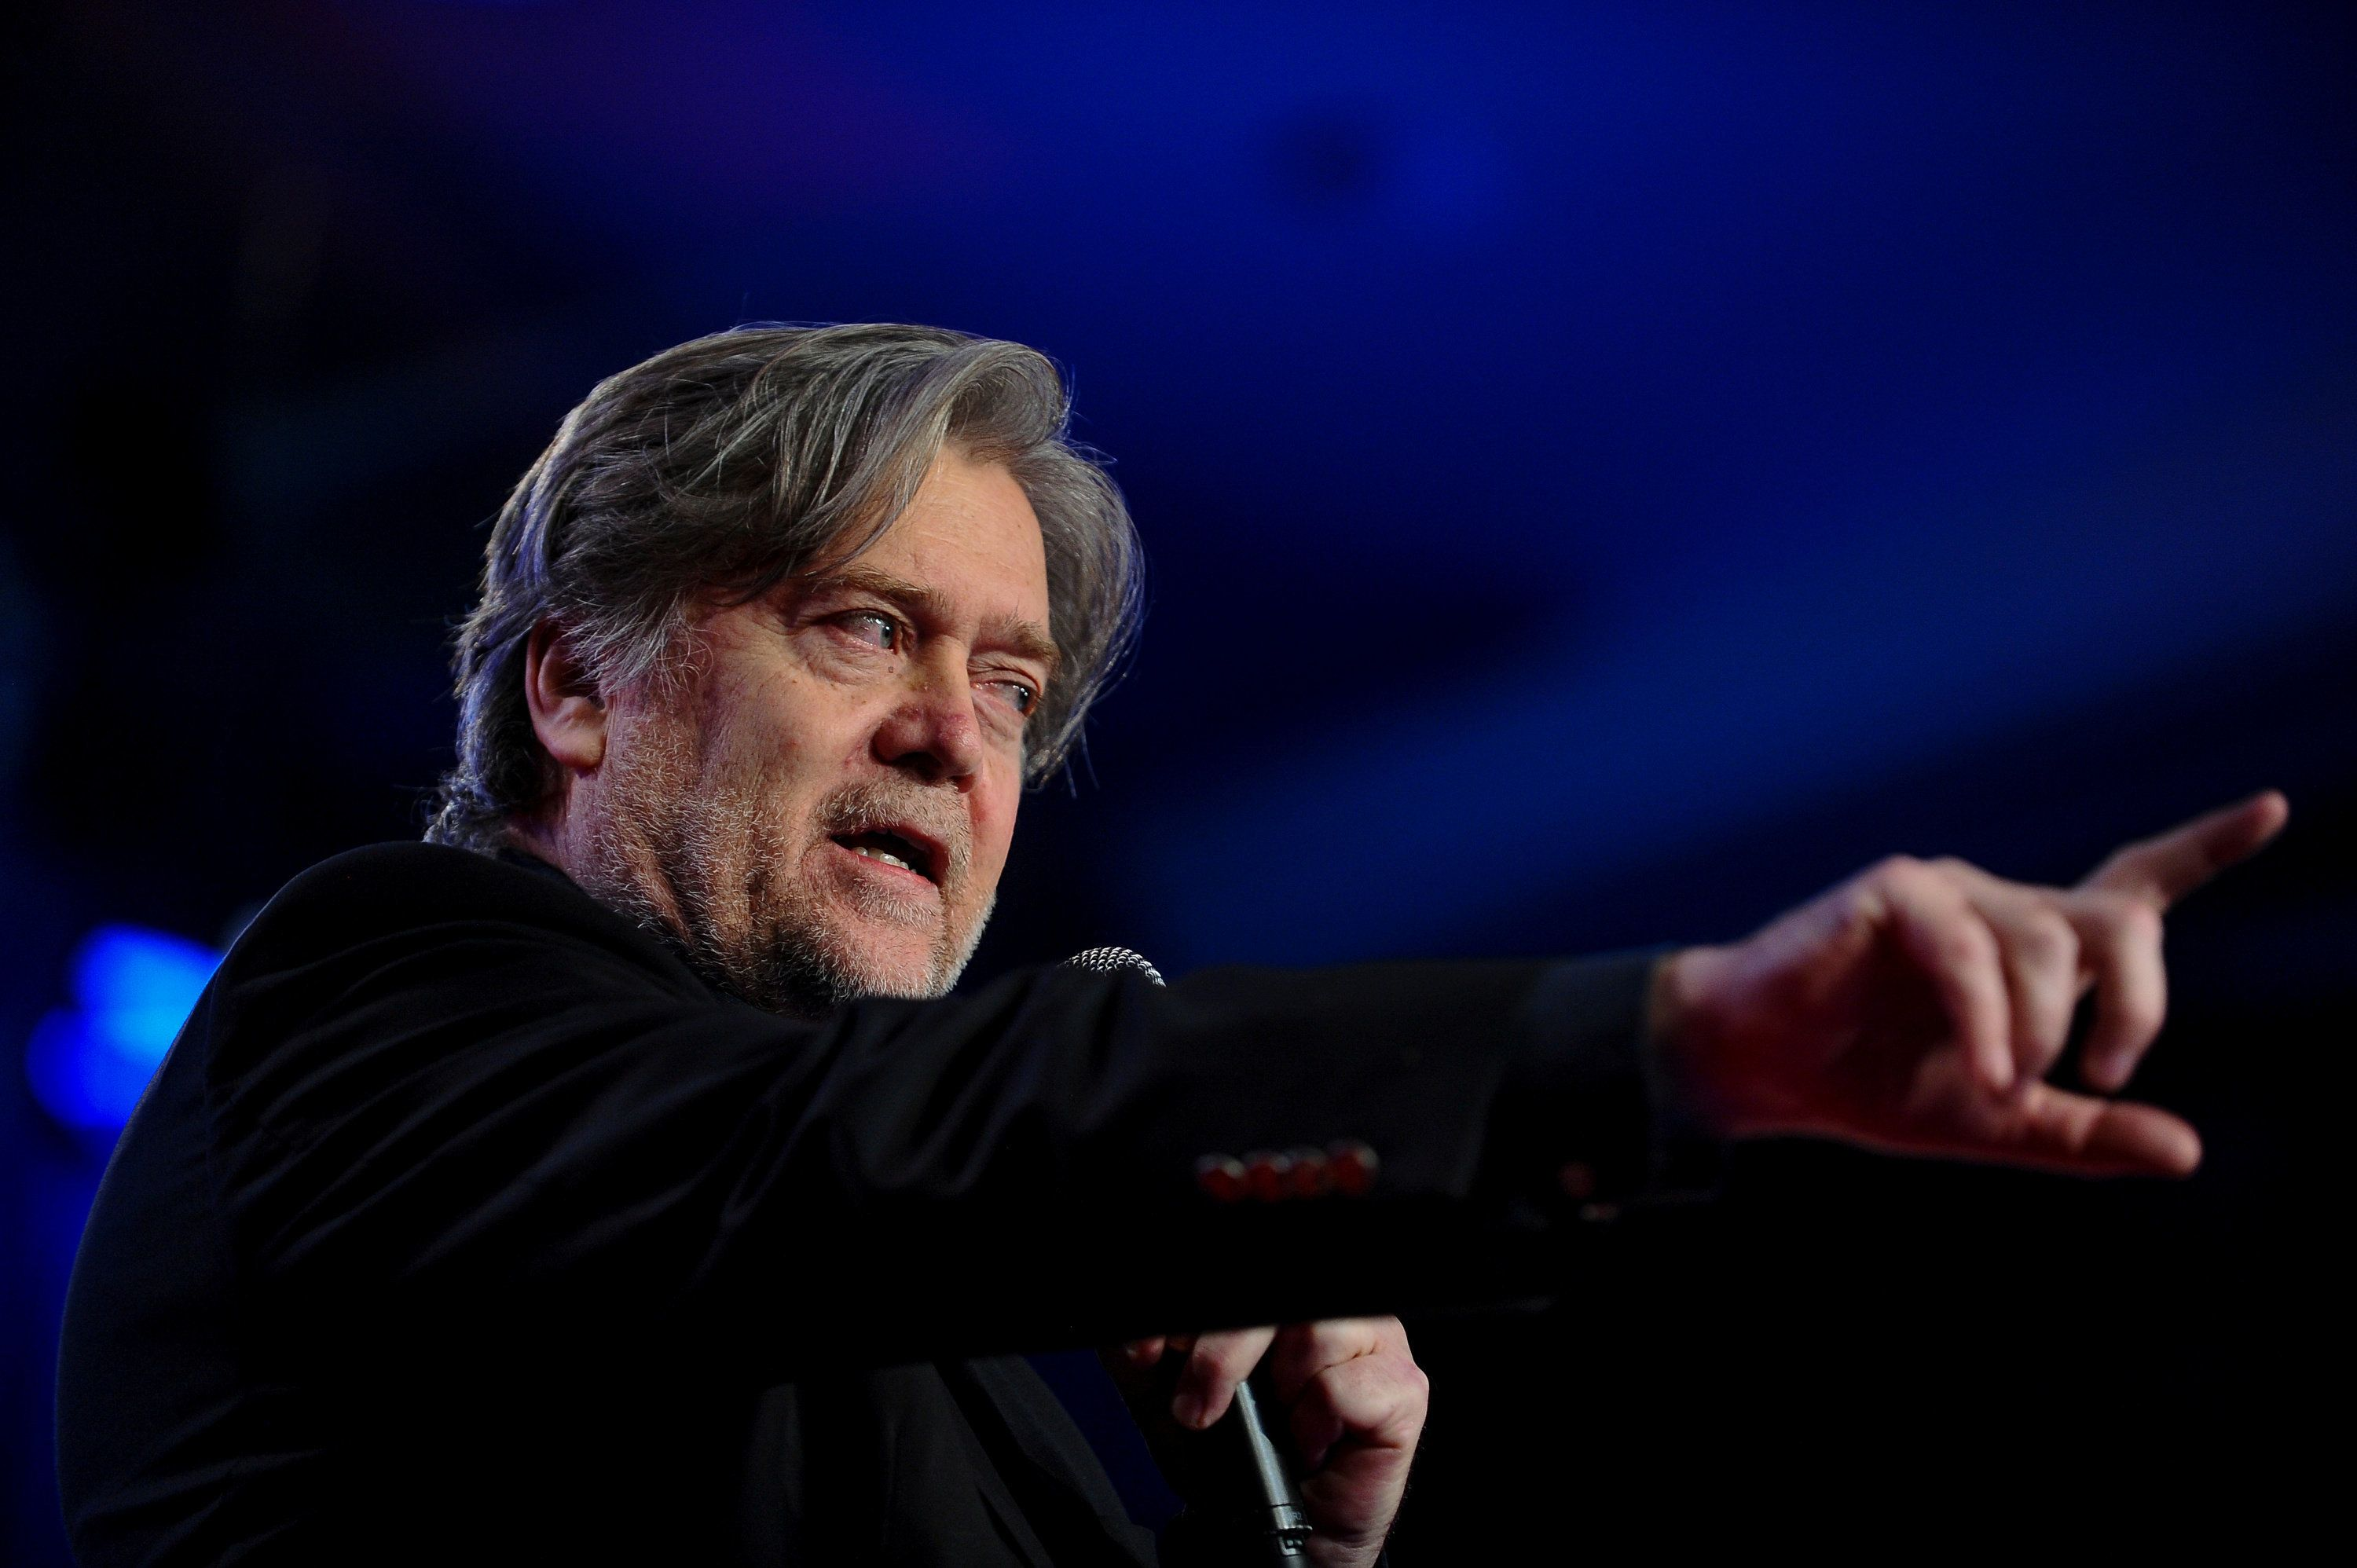 Former White House Chief Strategist Steve Bannon delivers remarks during the Value Voters Summit at the Omni Shoreham Hotel in Washington, U.S., October 14, 2017. REUTERS/Mary F. Calvert